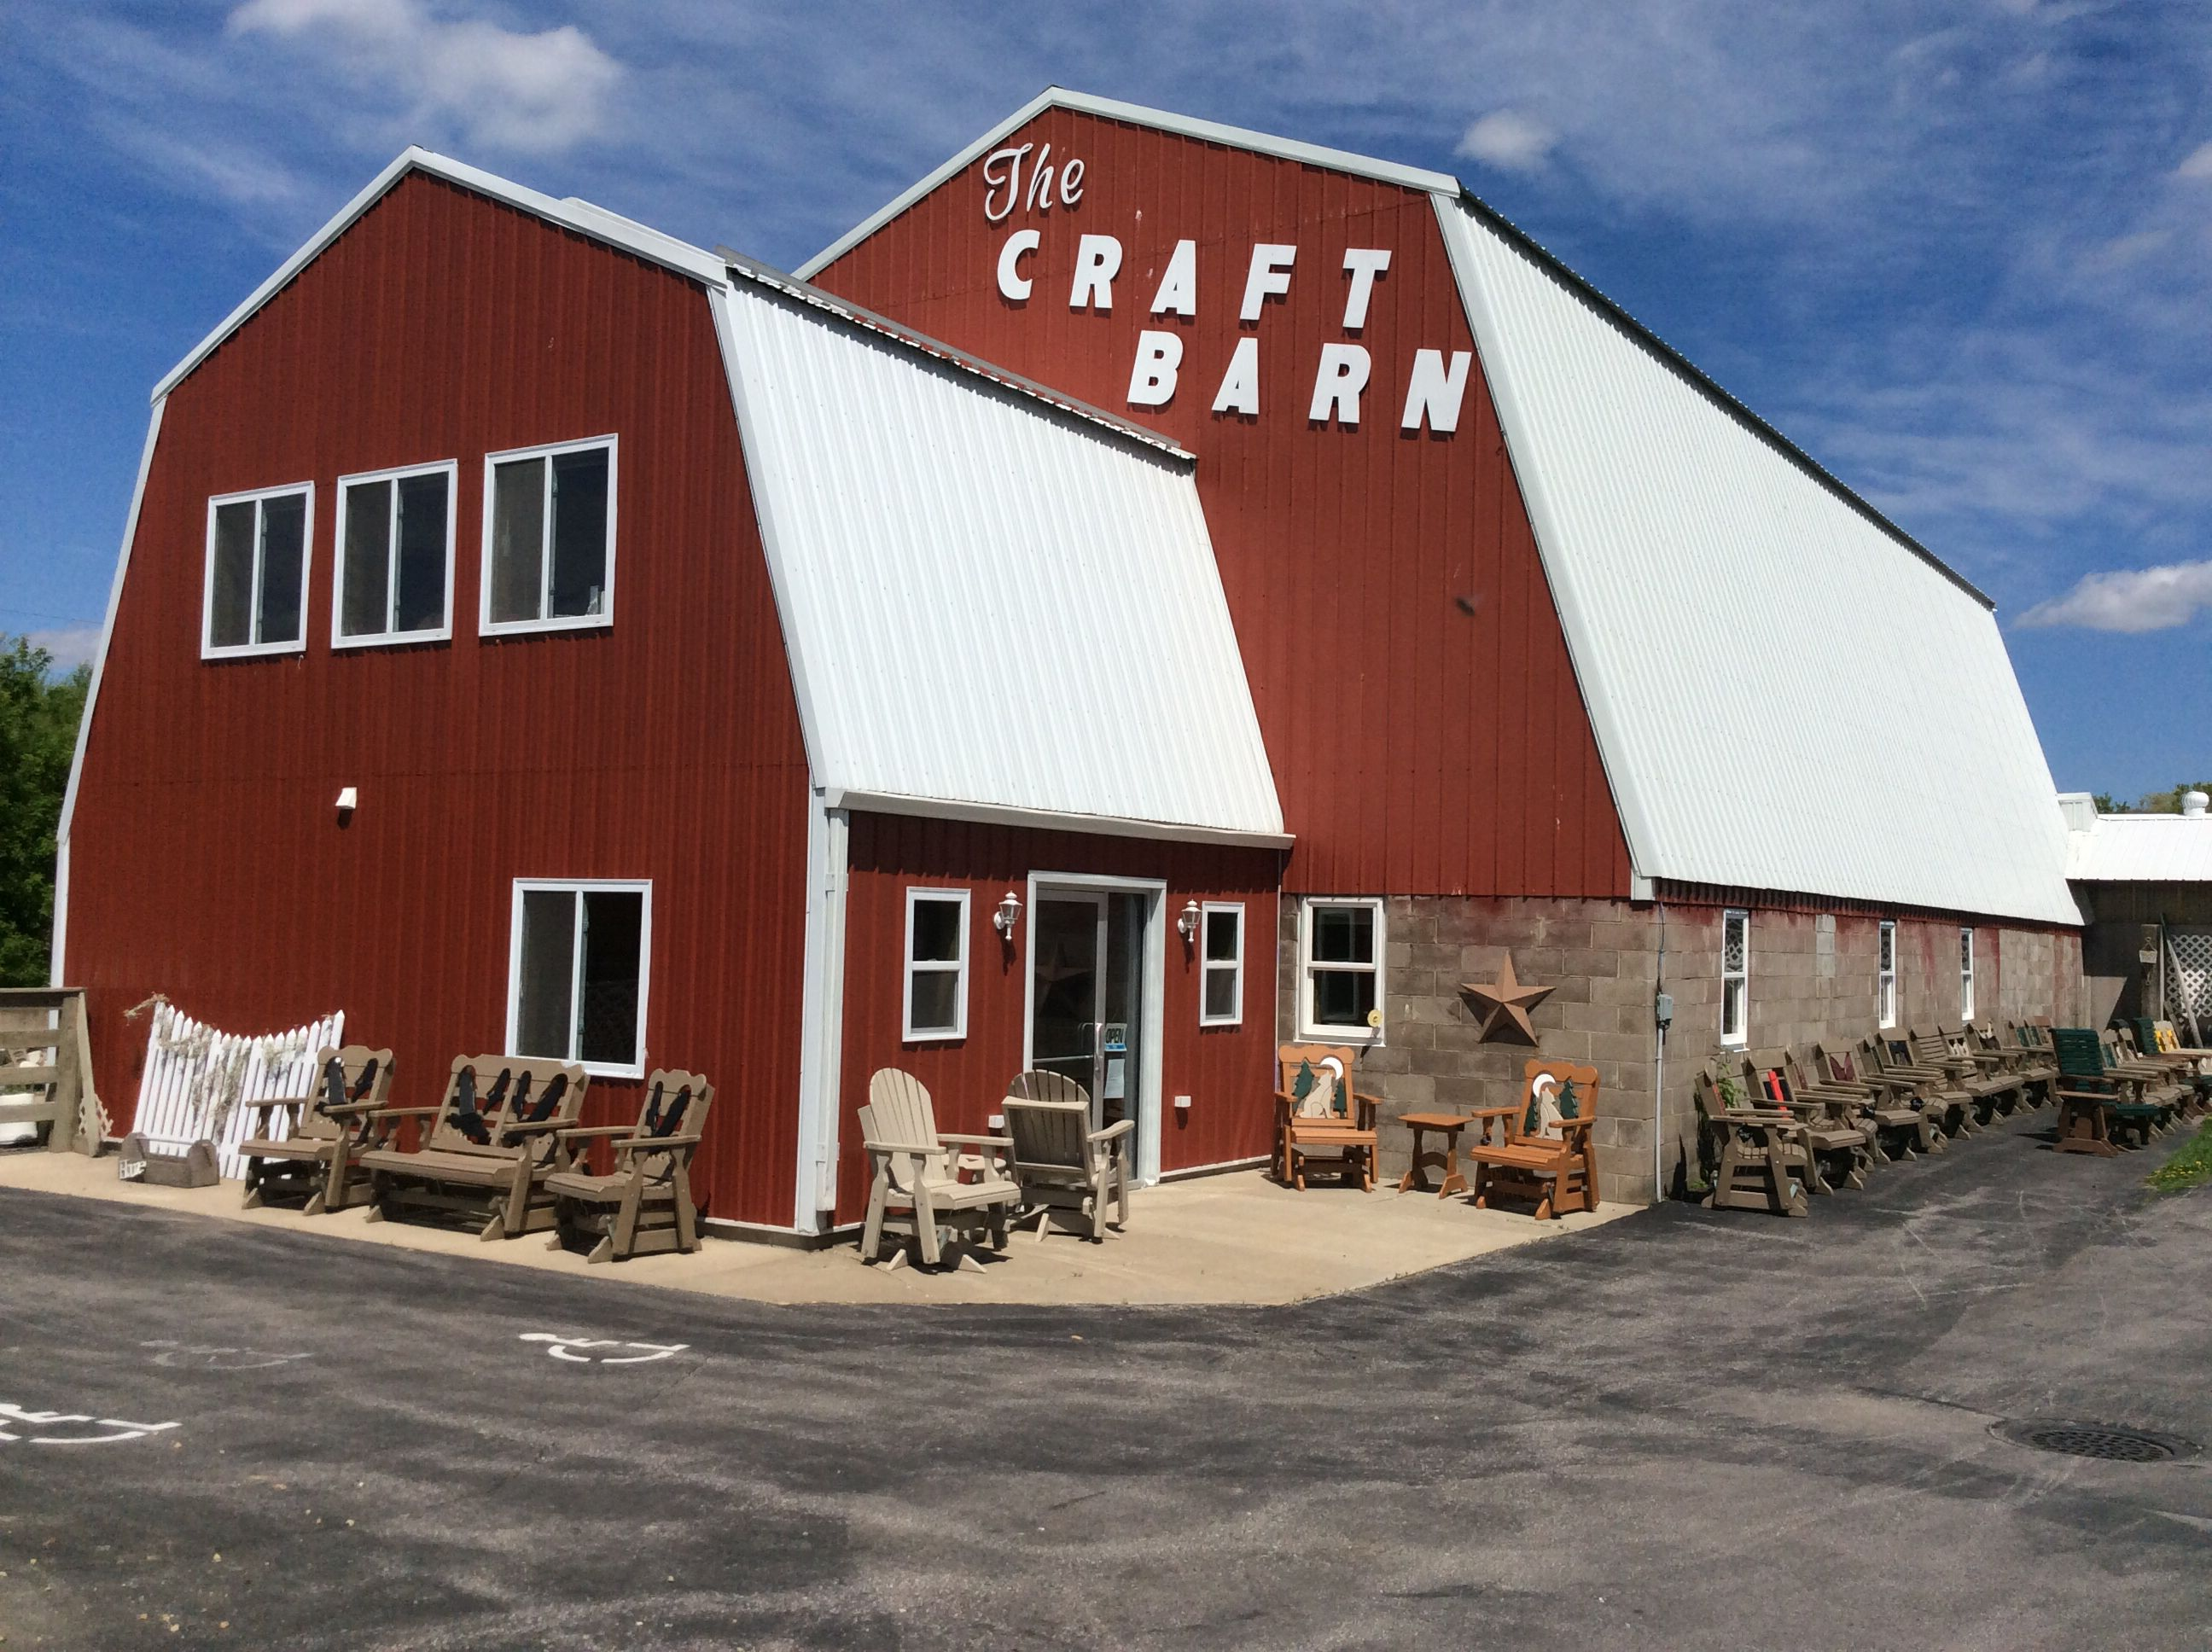 The Craft Barn Galesville Wisconsin Www Craftbarngalesville Com A Renovated Dairy Barn Turned Into A Wisconsin Vacation Wisconsin Travel Wisconsin Waterfalls